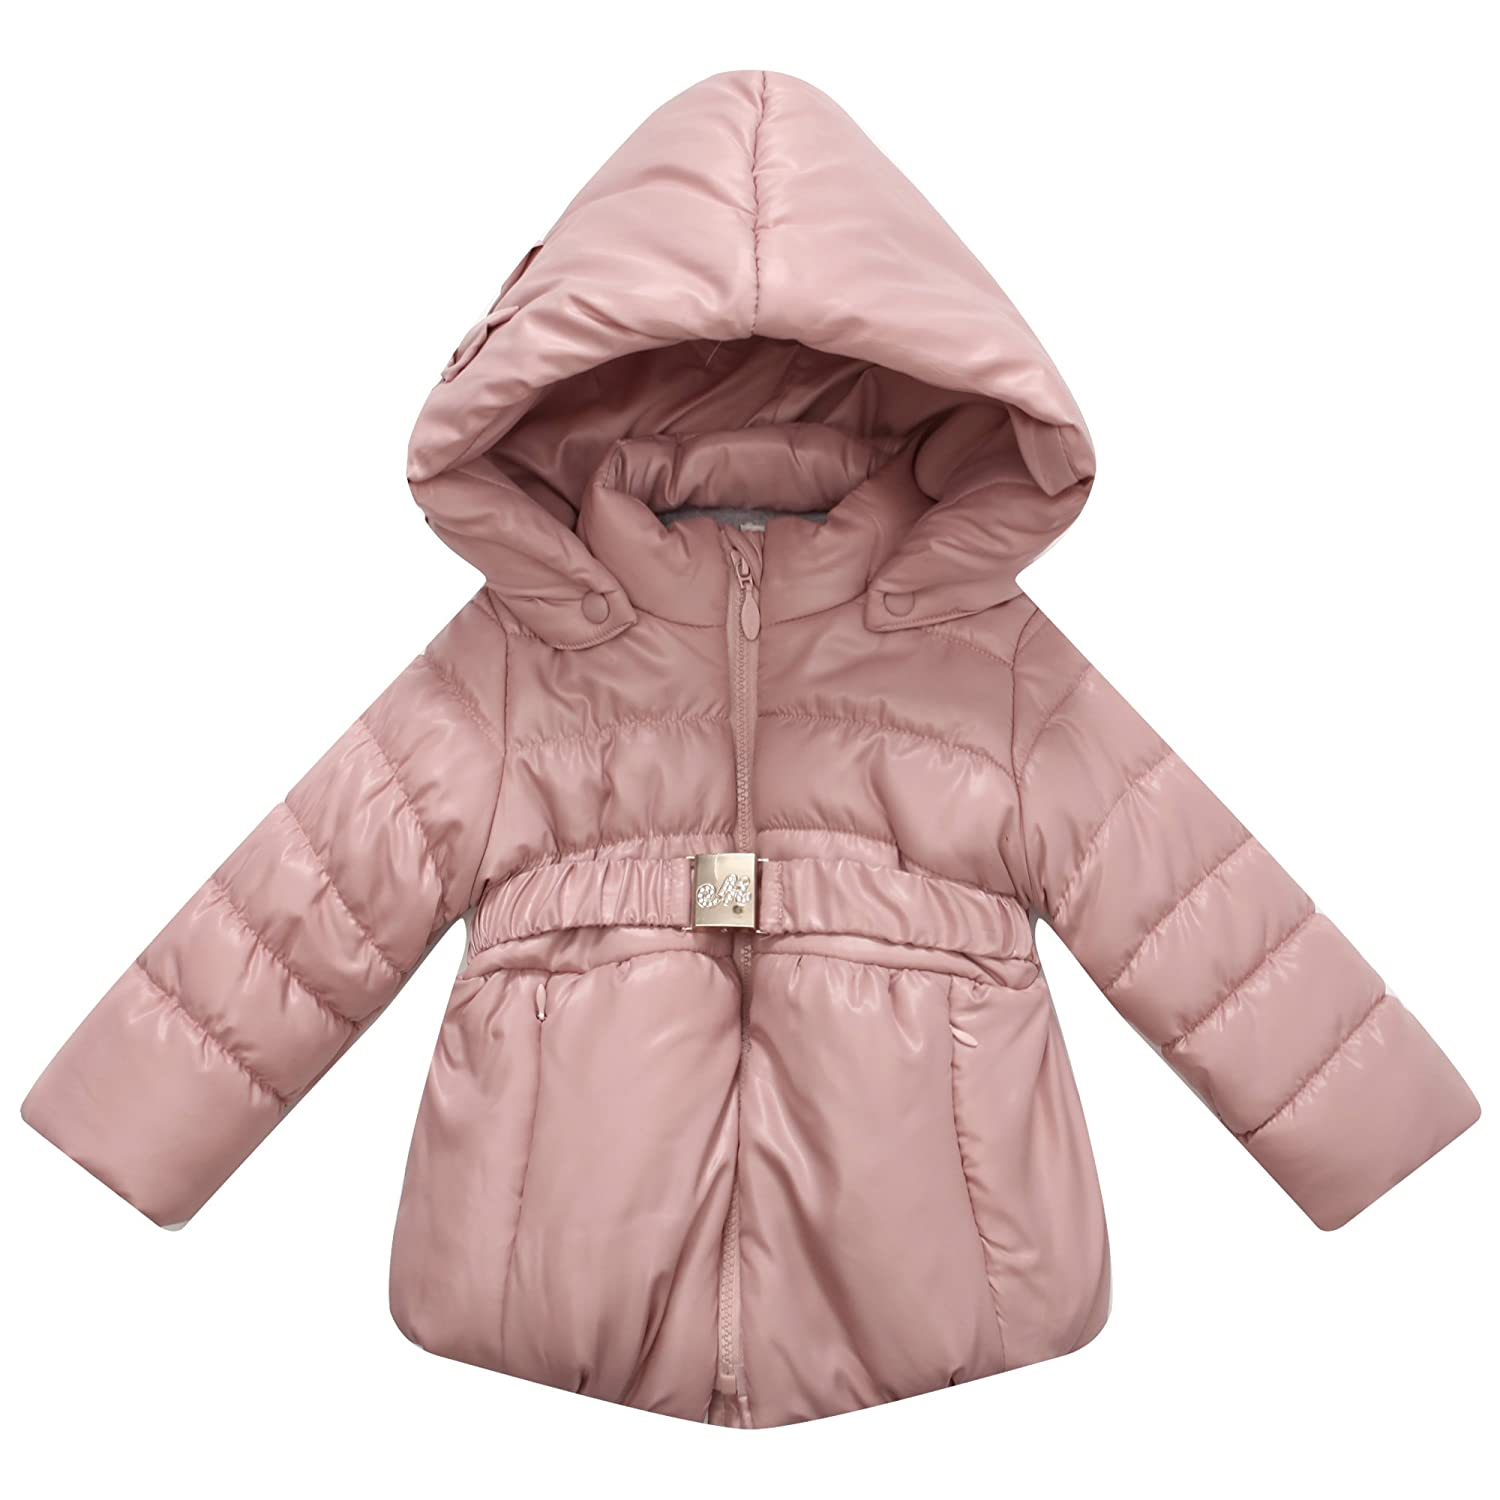 Richie House Girls' Hooded Padded Jacket Buckle Waistband RH0802